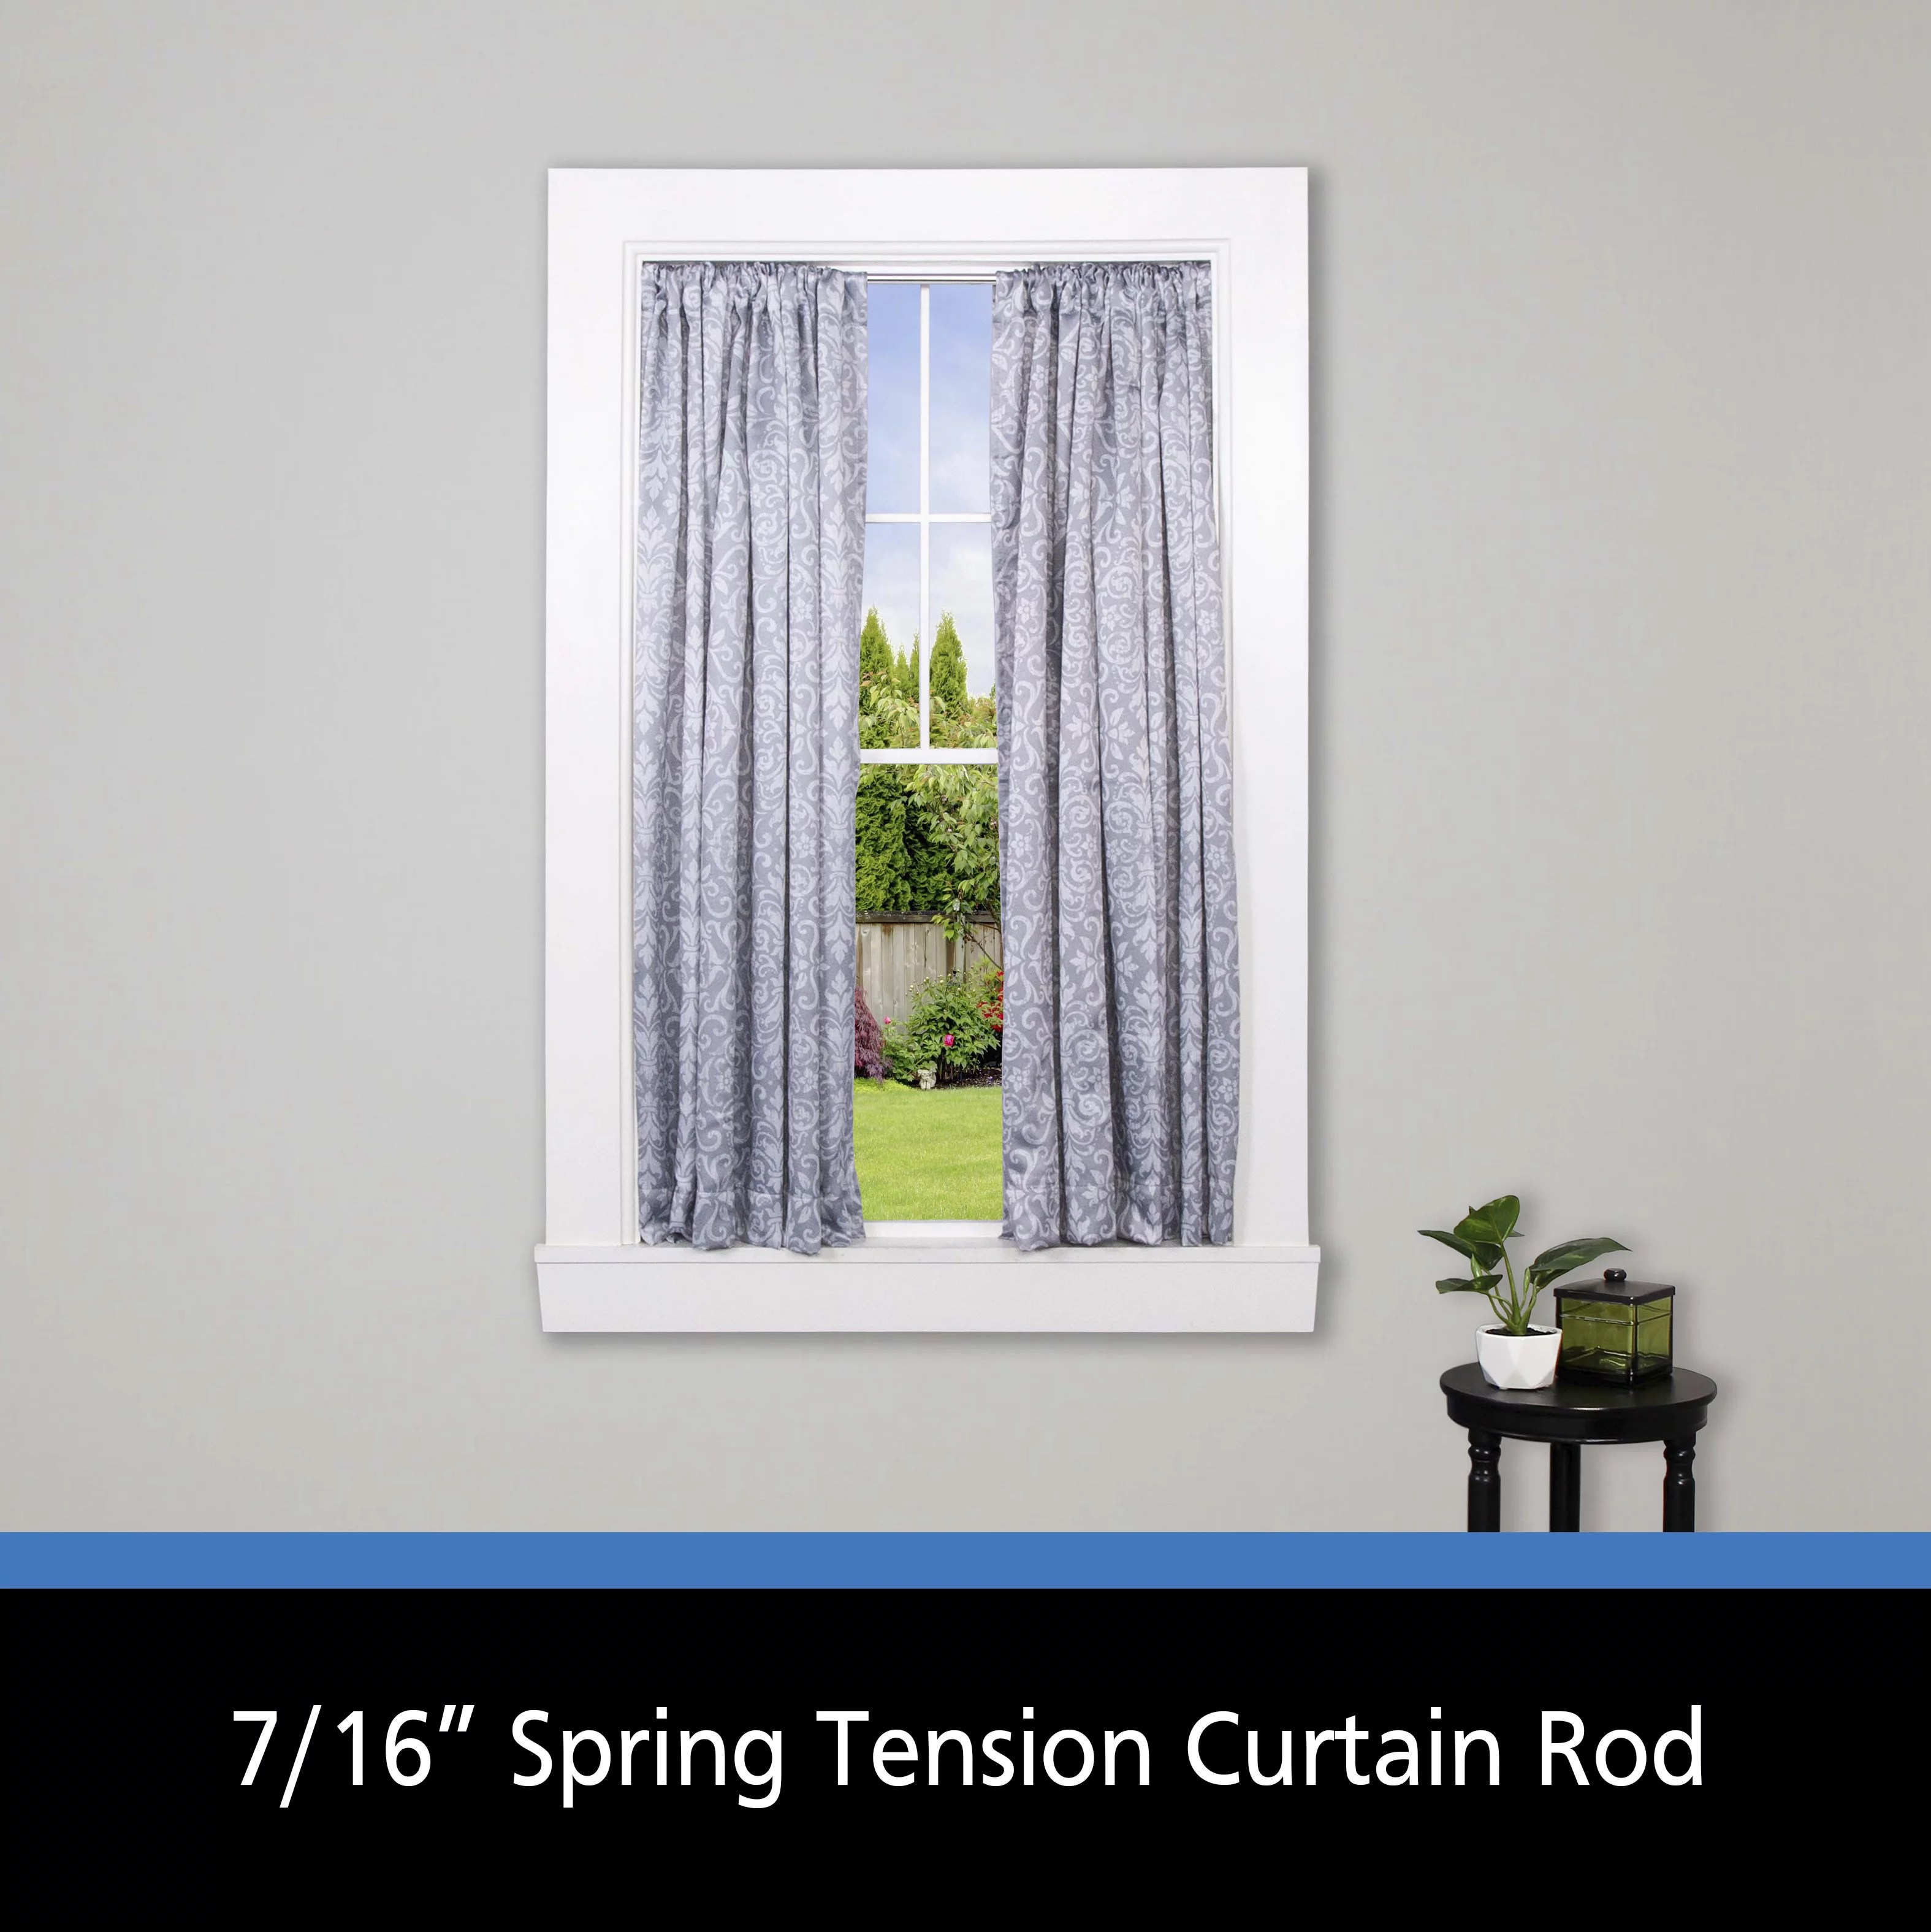 mainstays 18 28 in adjustable spring tension curtain rod 7 16 in diameter white